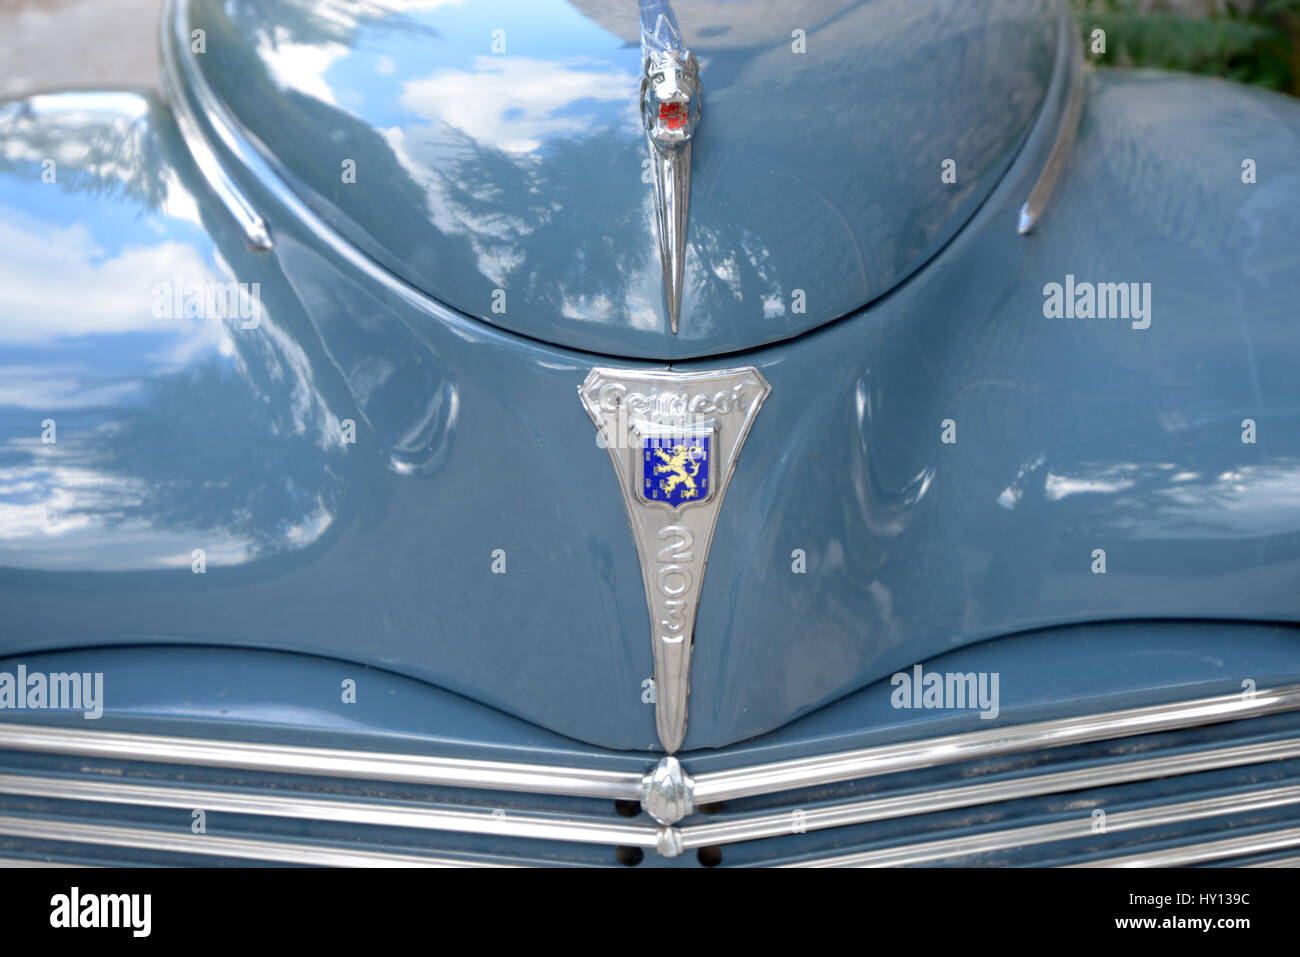 Car Bonnet or Hood of a French Veteran or Vintage Peugeot 203 Car or Automobile Produced in France Between 1948 - Stock Image